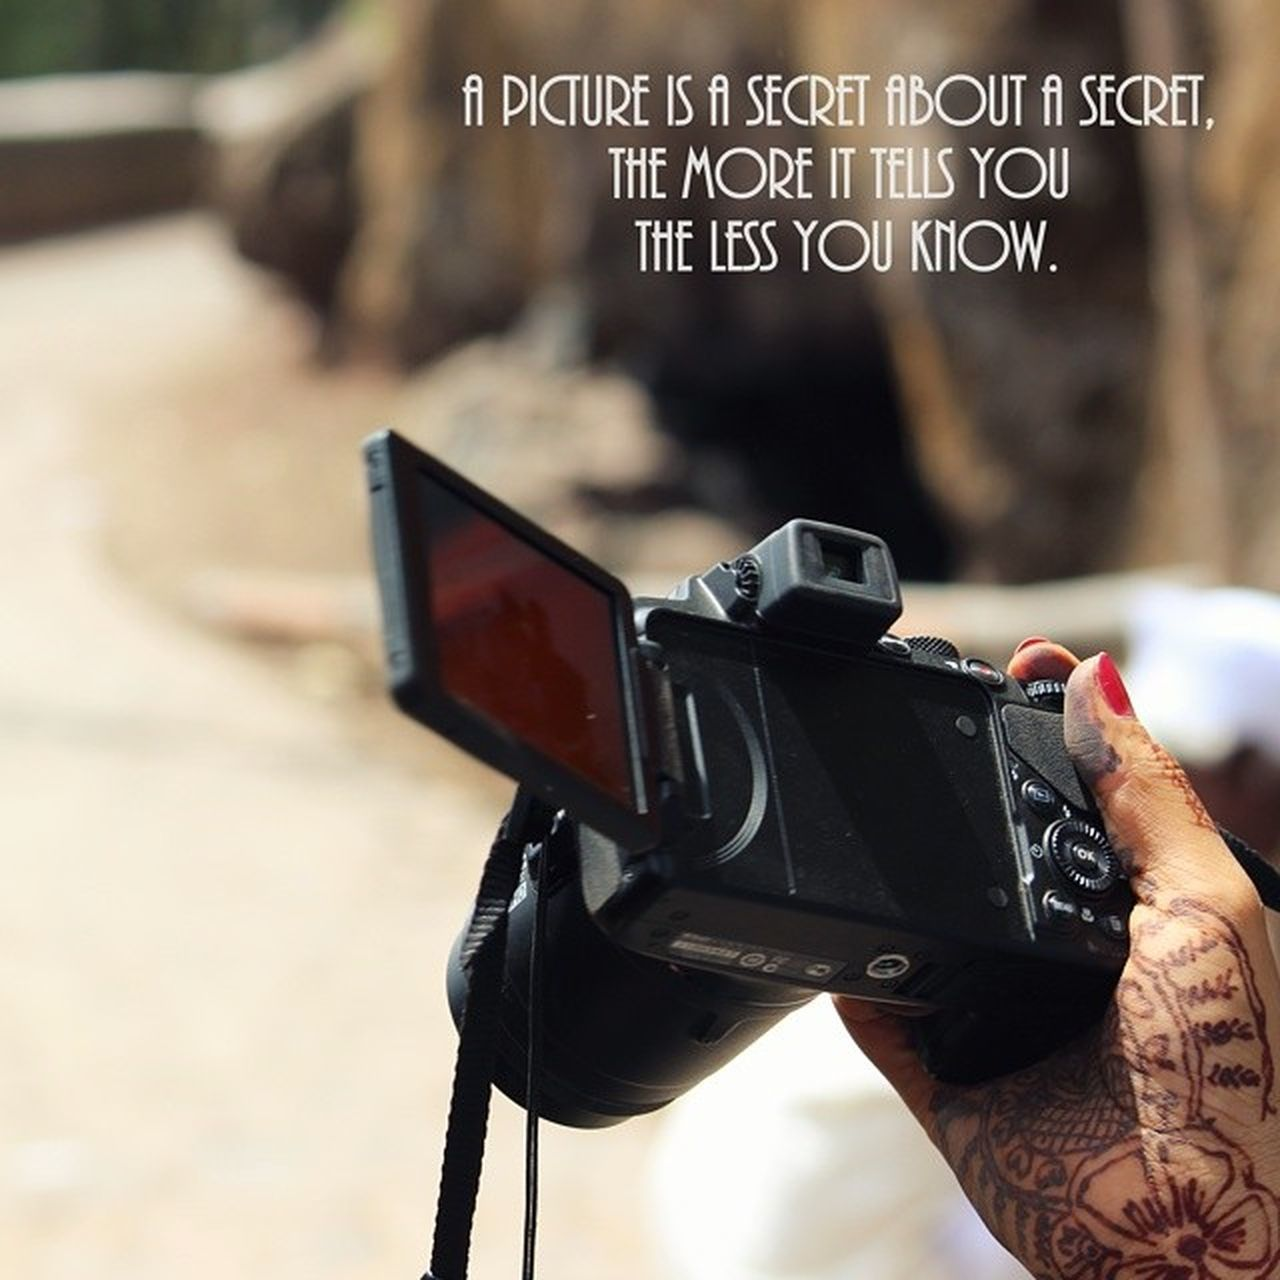 text, communication, focus on foreground, one person, real people, human hand, holding, close-up, day, outdoors, human body part, technology, people